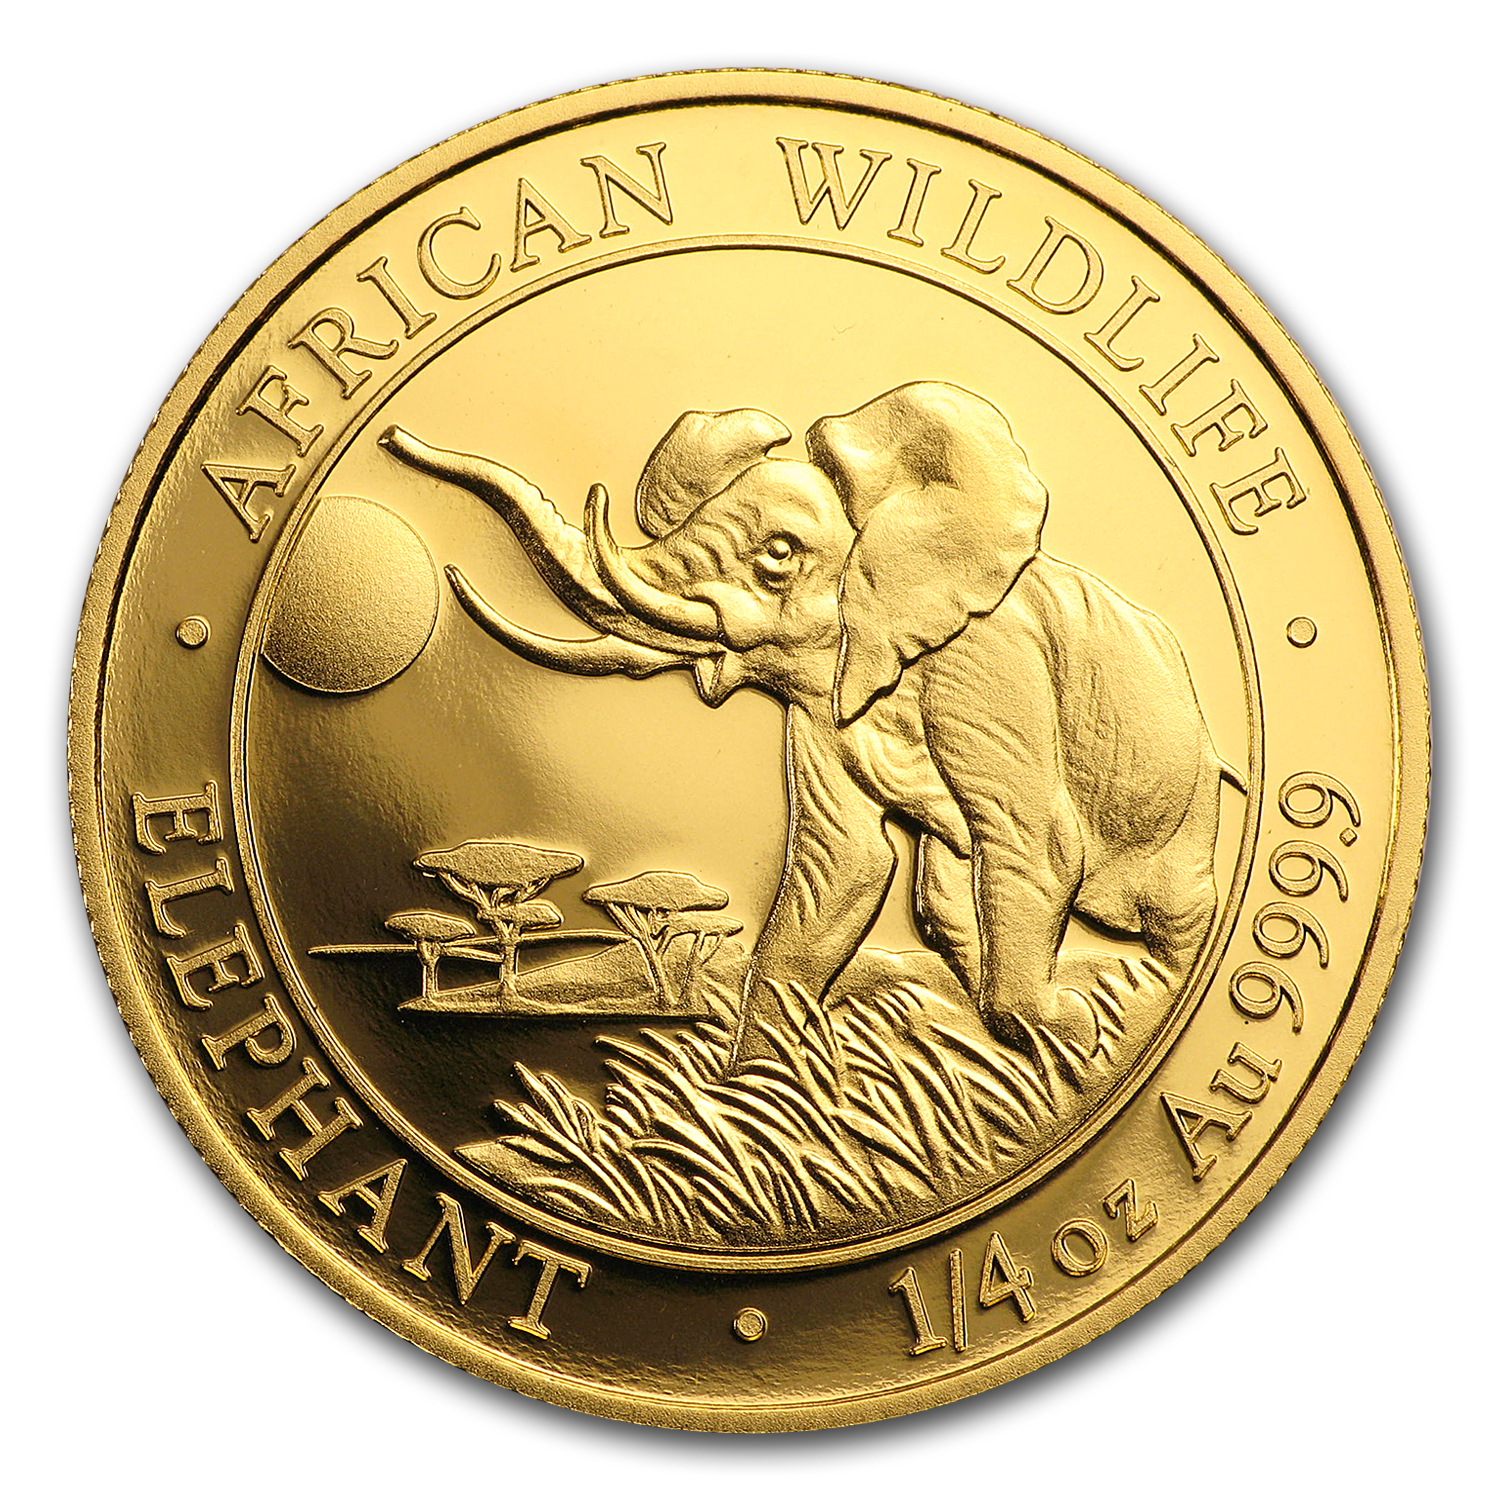 2016 Somalia 1/4 oz Gold African Elephant Proof